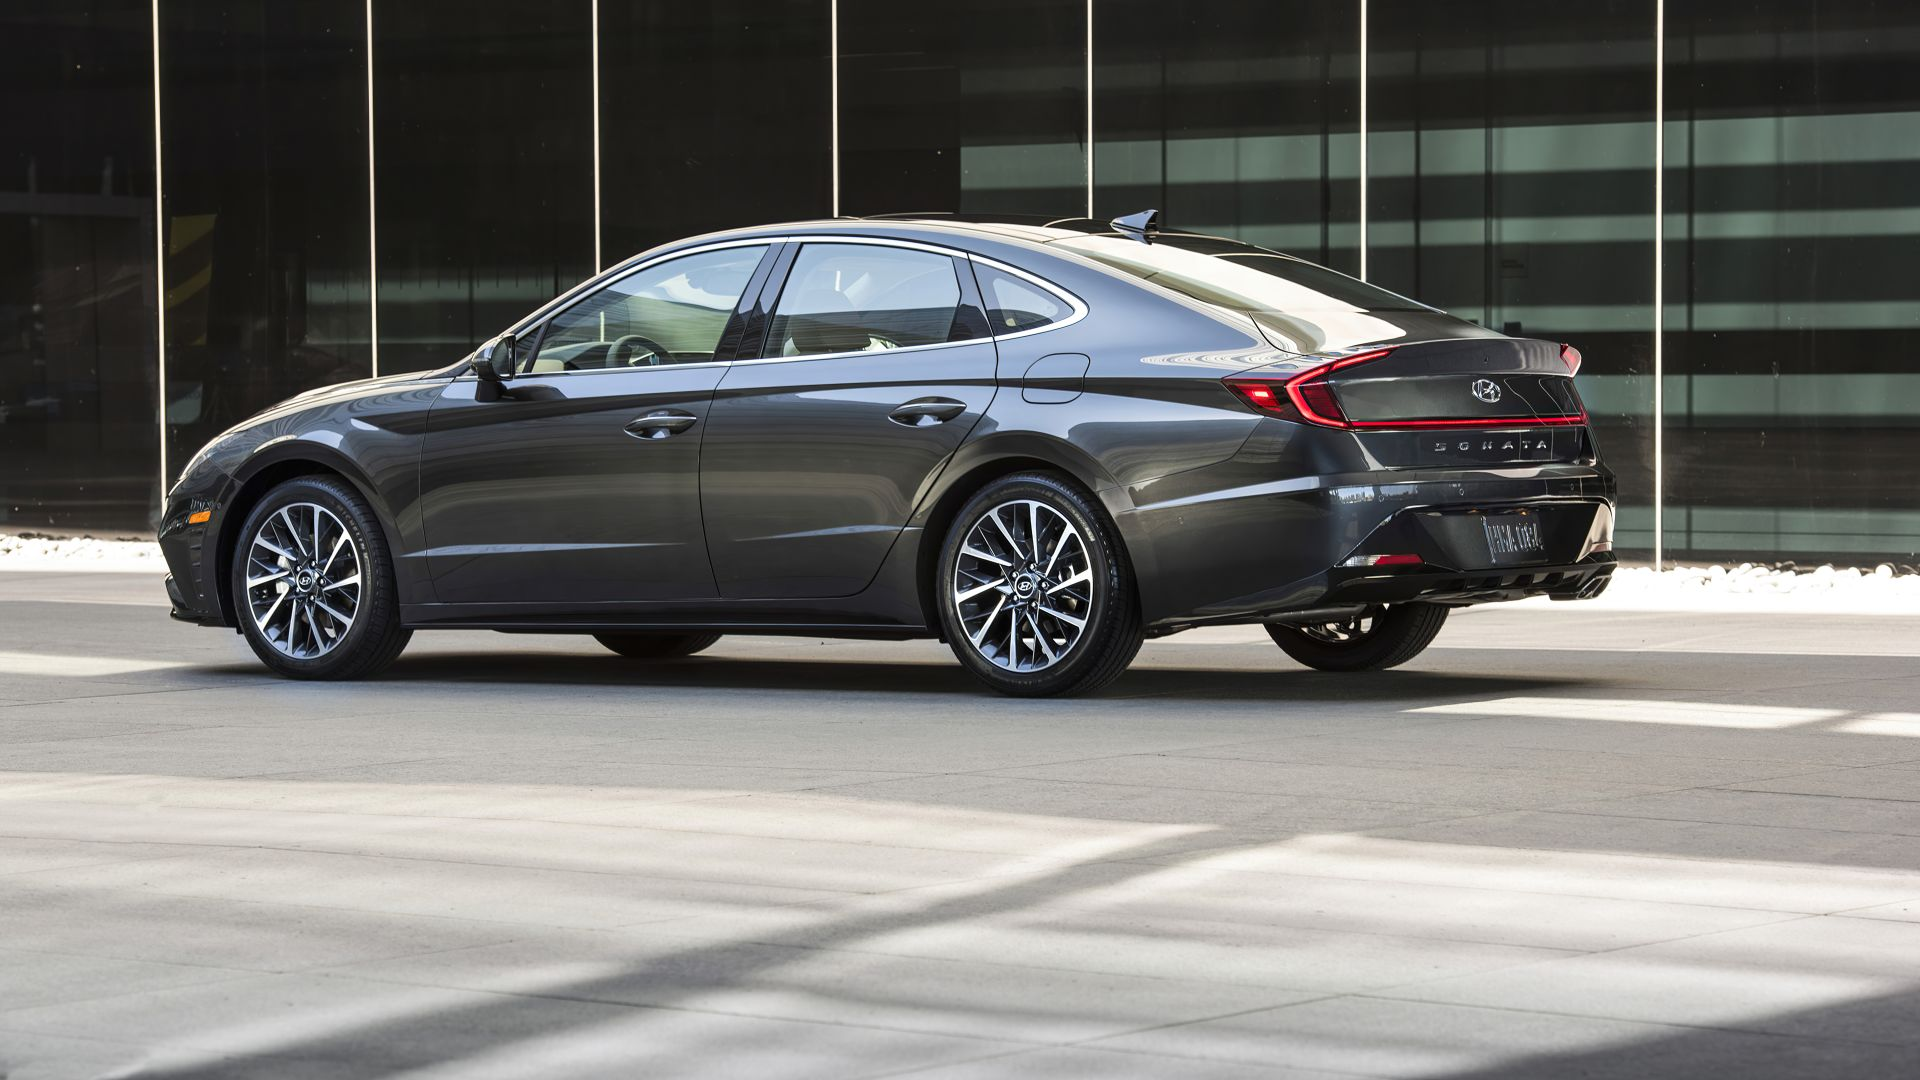 Hyundai Sonata Limited, 2020 cars, 5K (horizontal)